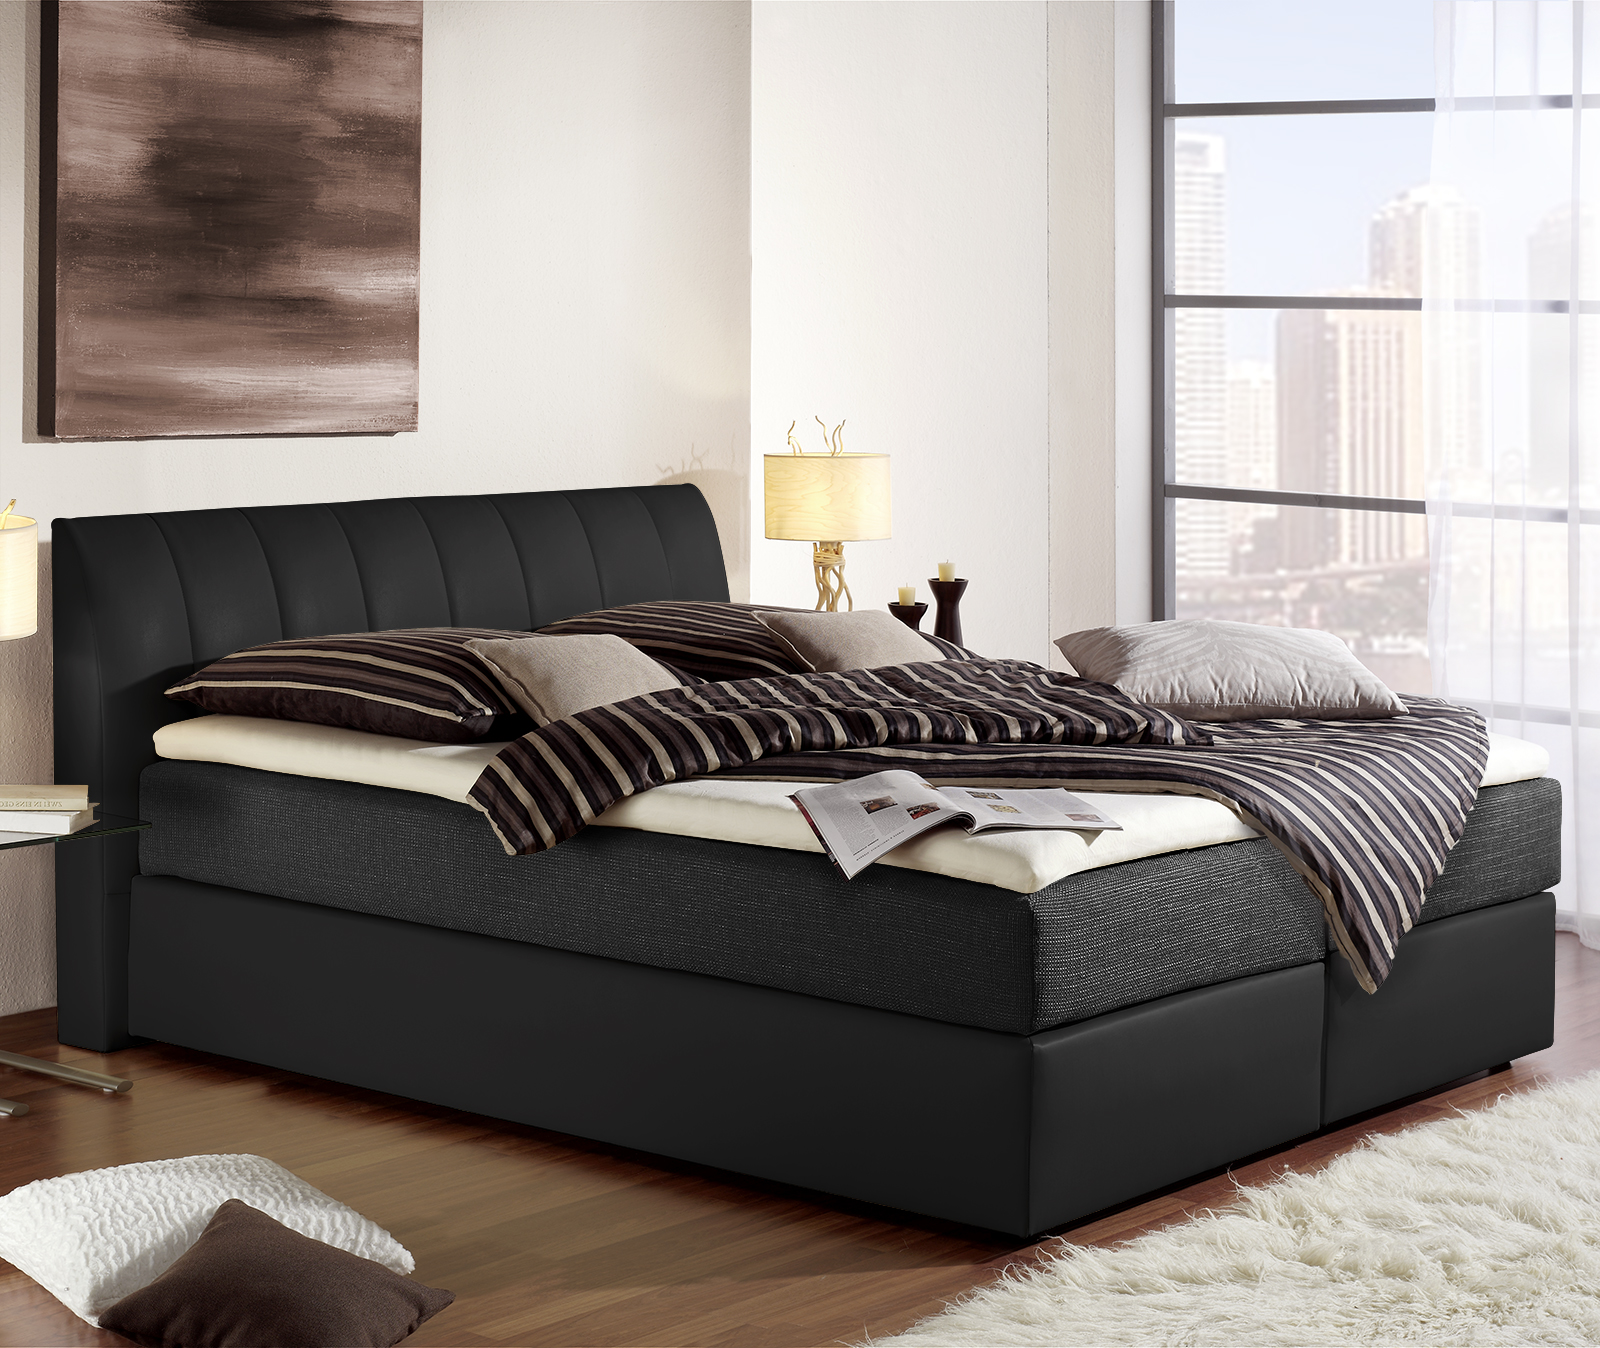 boxspring matratze auf lattenrost boxspring matratze auf lattenrost 4175 5051 bett dave 01. Black Bedroom Furniture Sets. Home Design Ideas